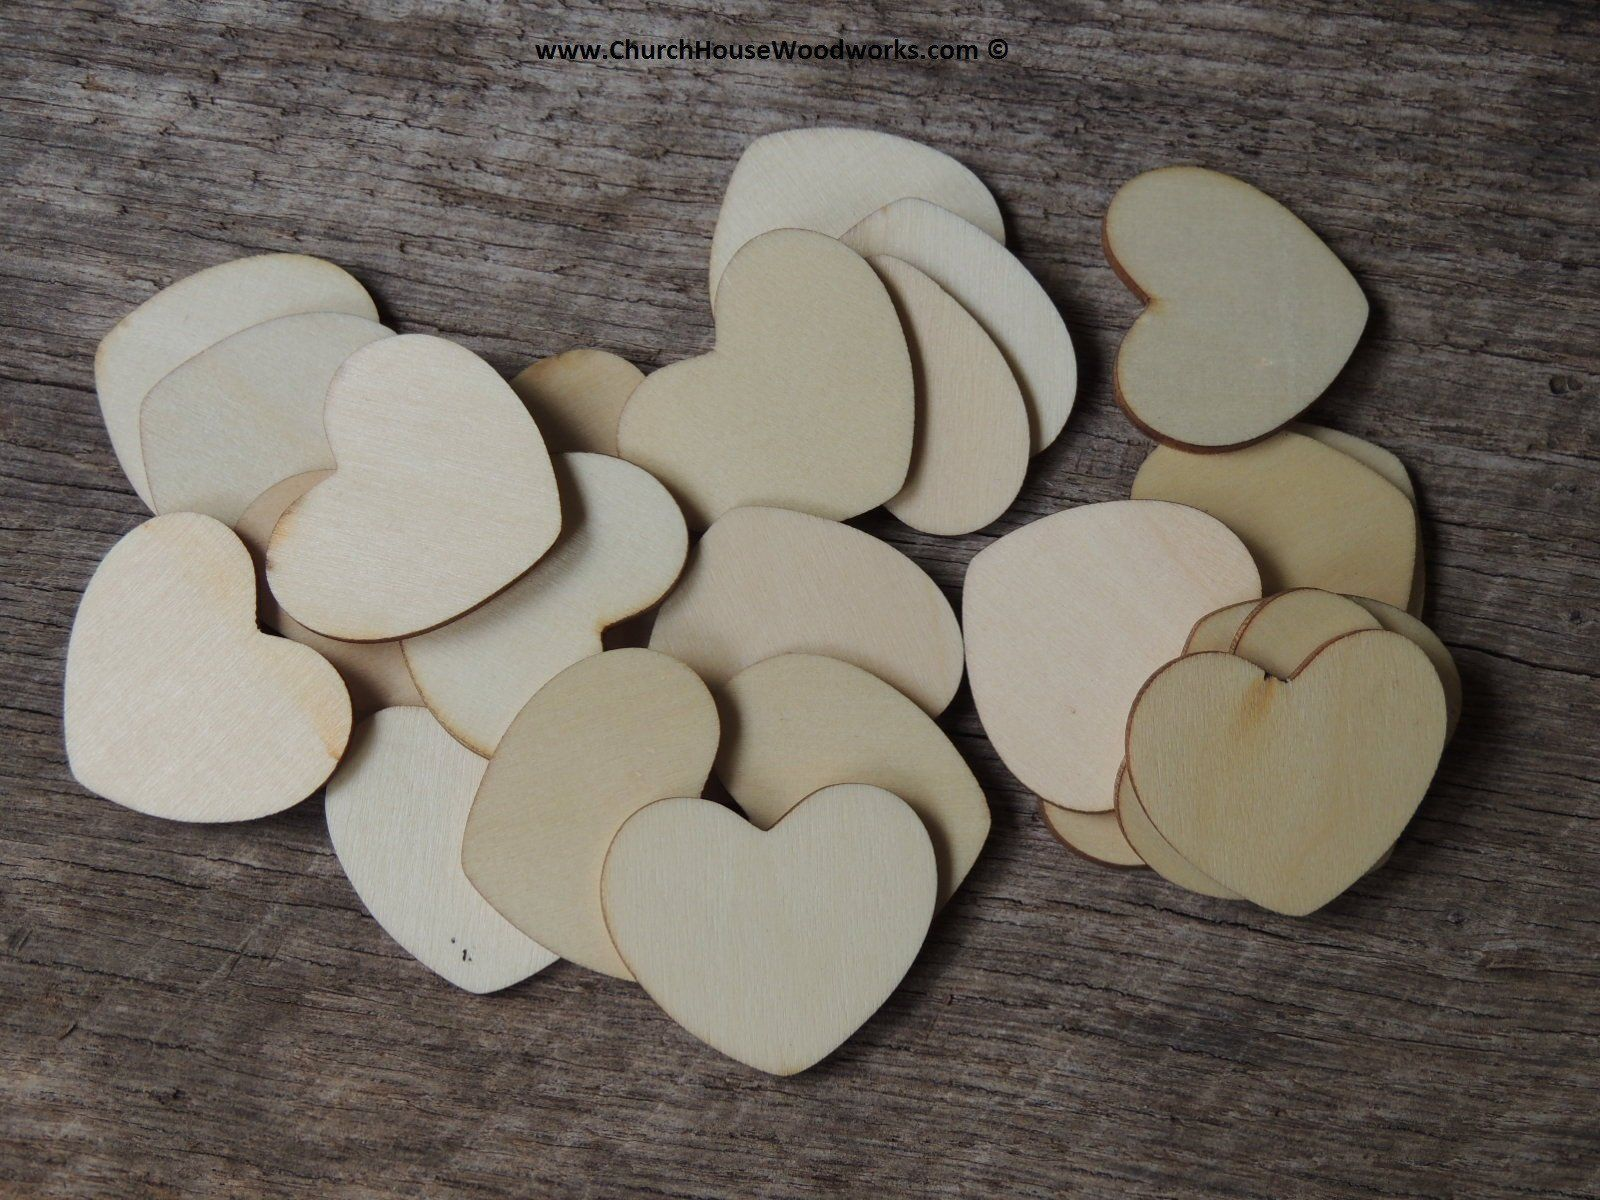 Blank 1 Wood Hearts 100 Ct 1inch Wooden Hearts Light Colored Wood Wedding Decorations